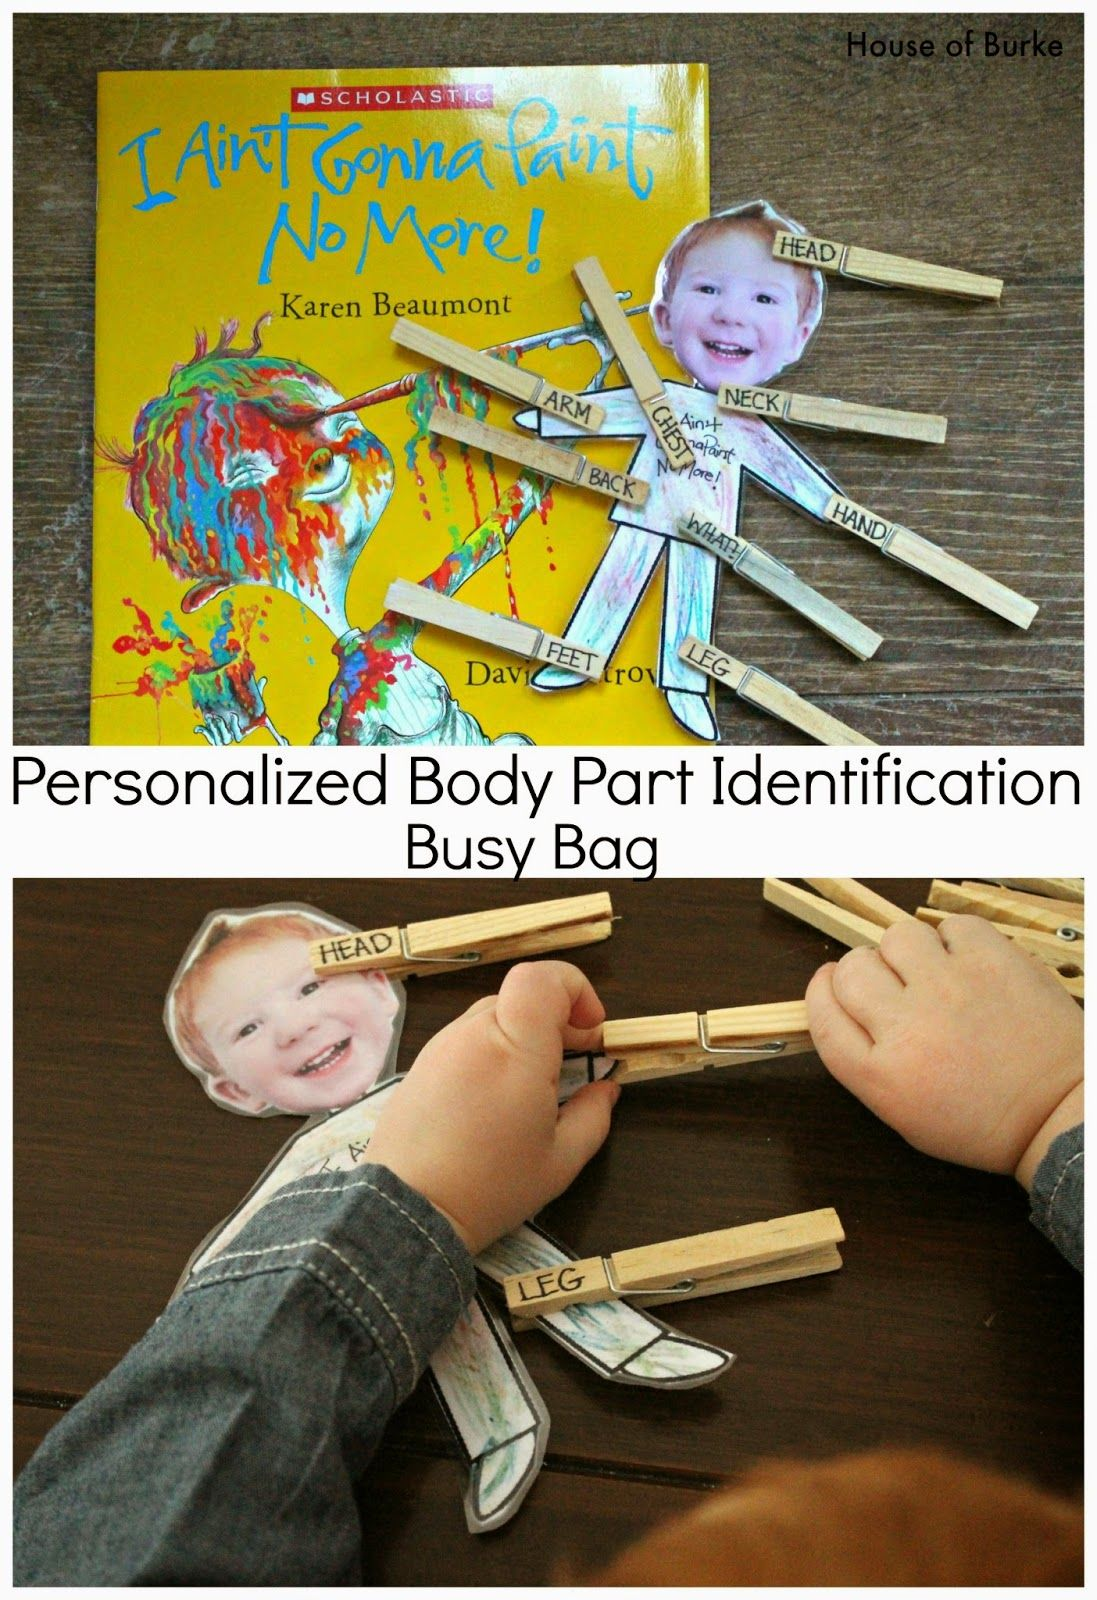 Personalized Body Part Identification Busy Bag